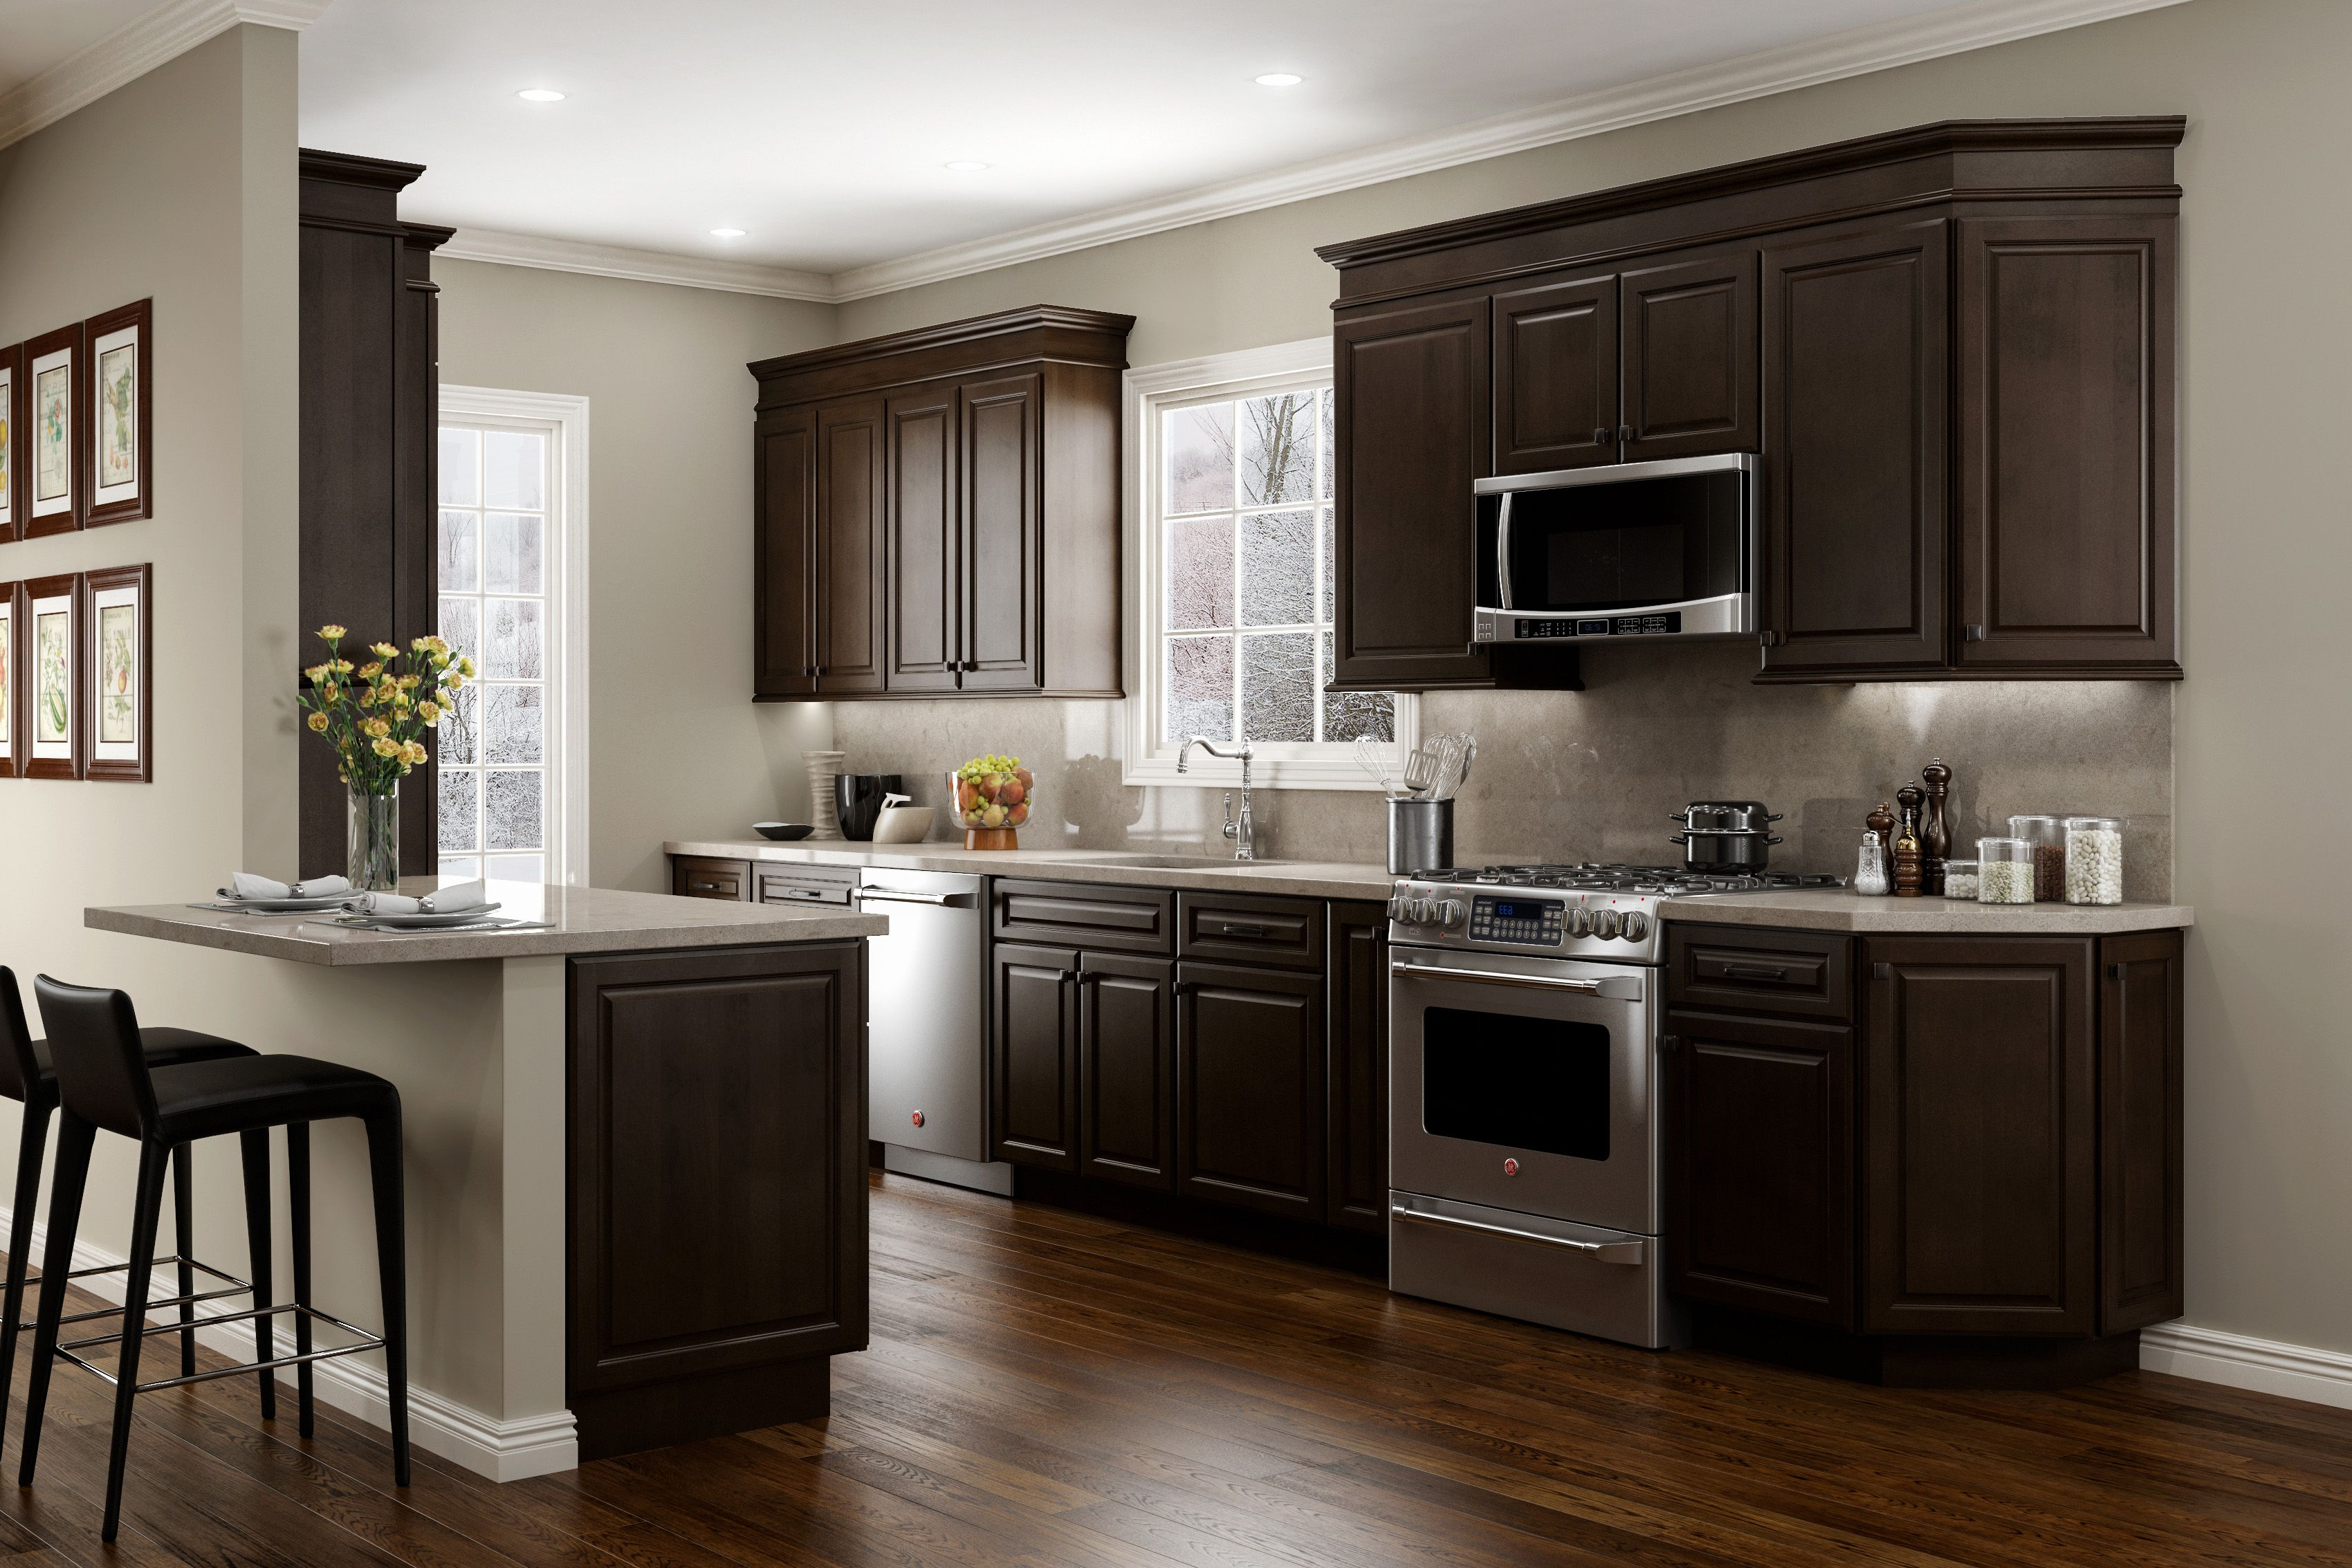 Jsi Cabinetry Quincy Espresso Kitchen Dark Kitchen Cabinets Espresso Kitchen Cabinets Brown Kitchen Cabinets